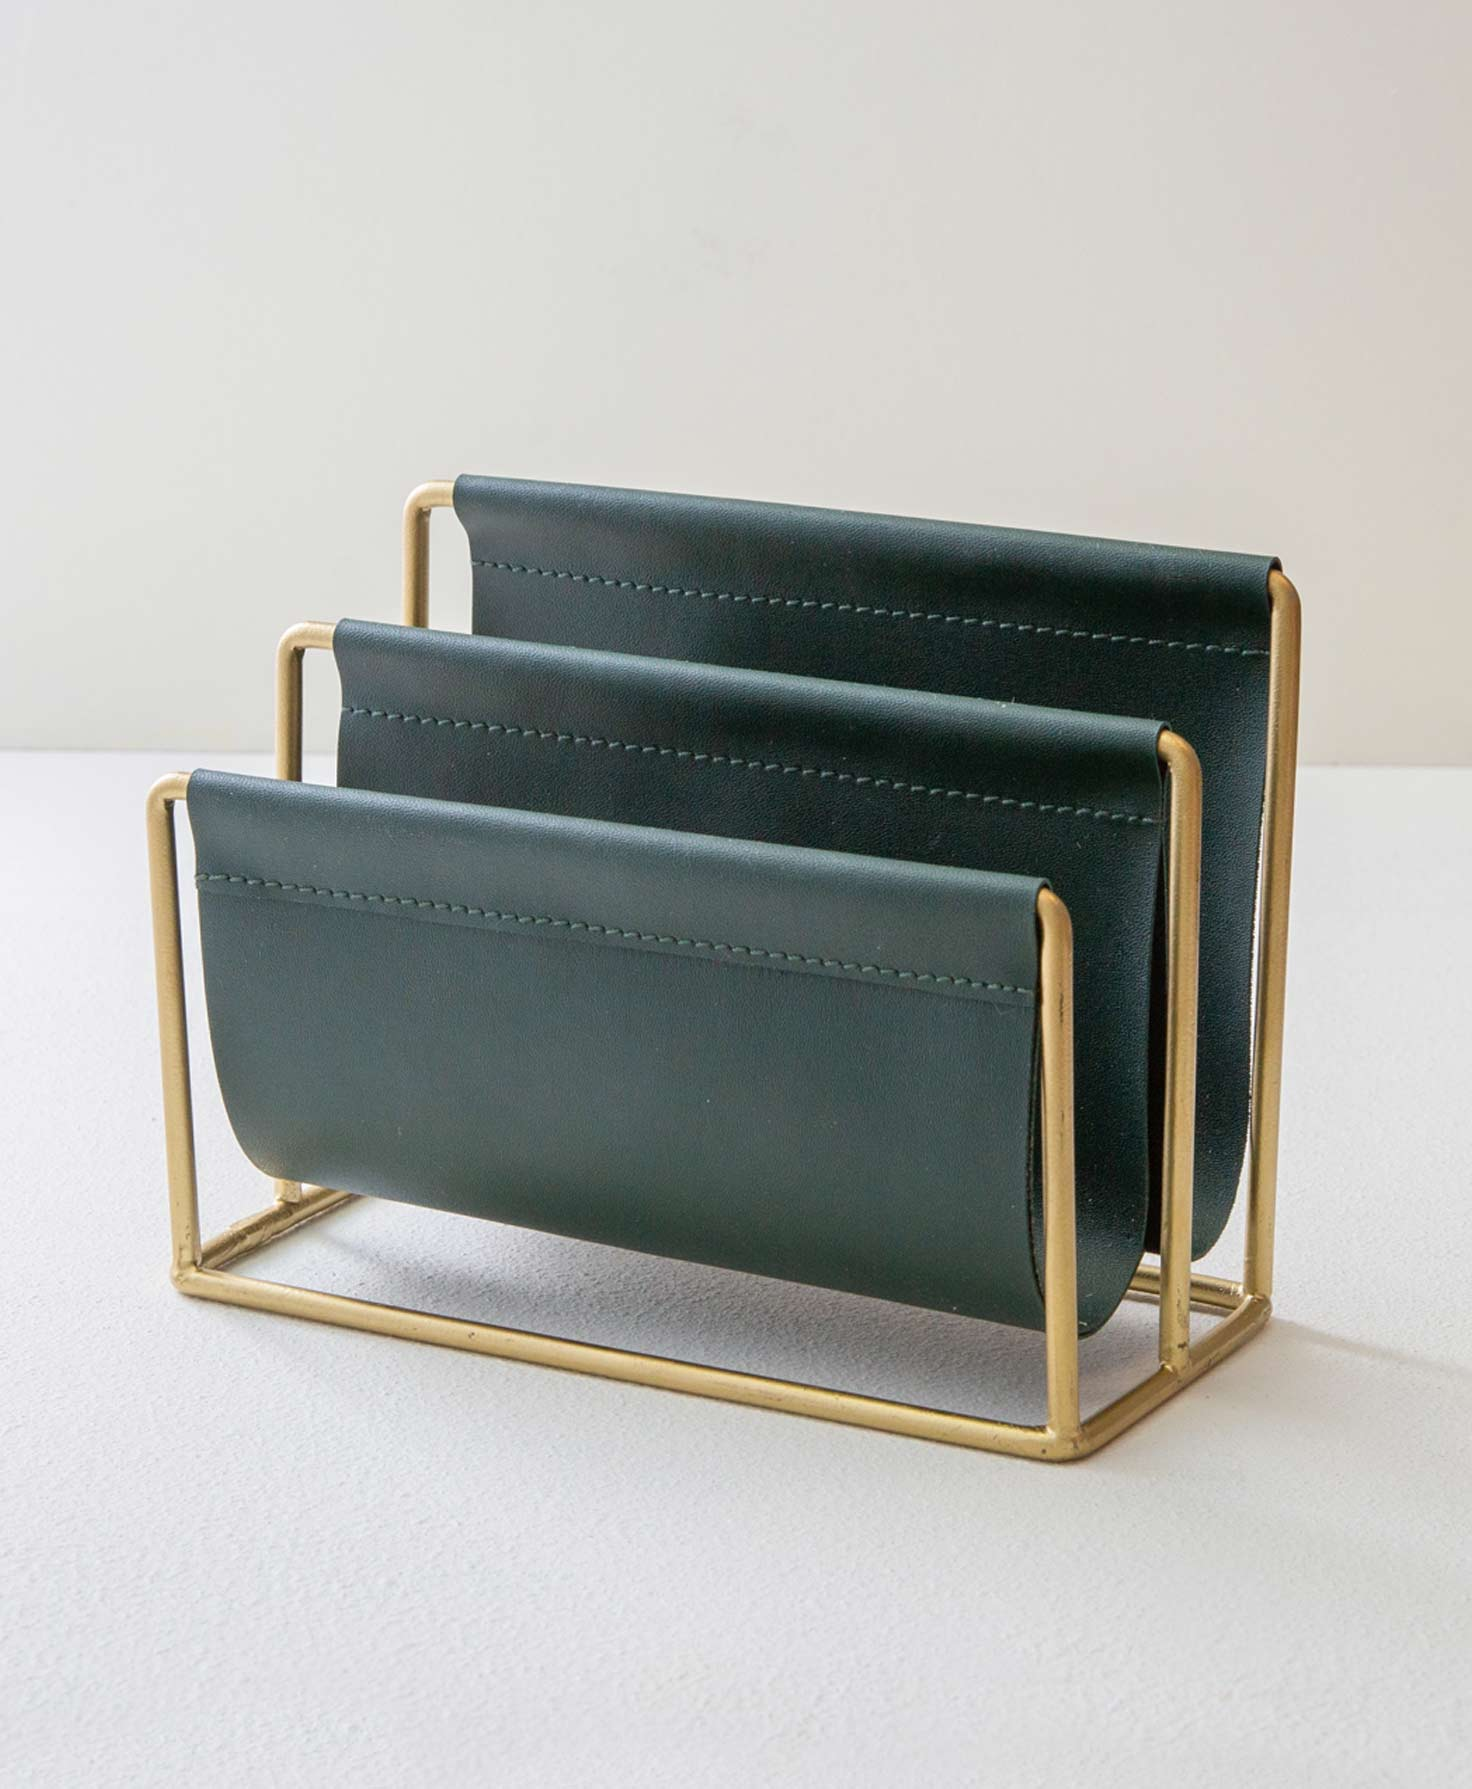 The Mail Caddy sits on a white background. It is composed of a brass-colored metal frame that forms two sections for holding mail. Deep green faux leather is attached to each metal bar and hangs down to form a place for mail to rest. The front section is lower than the back section so that the height of the mail is staggered.